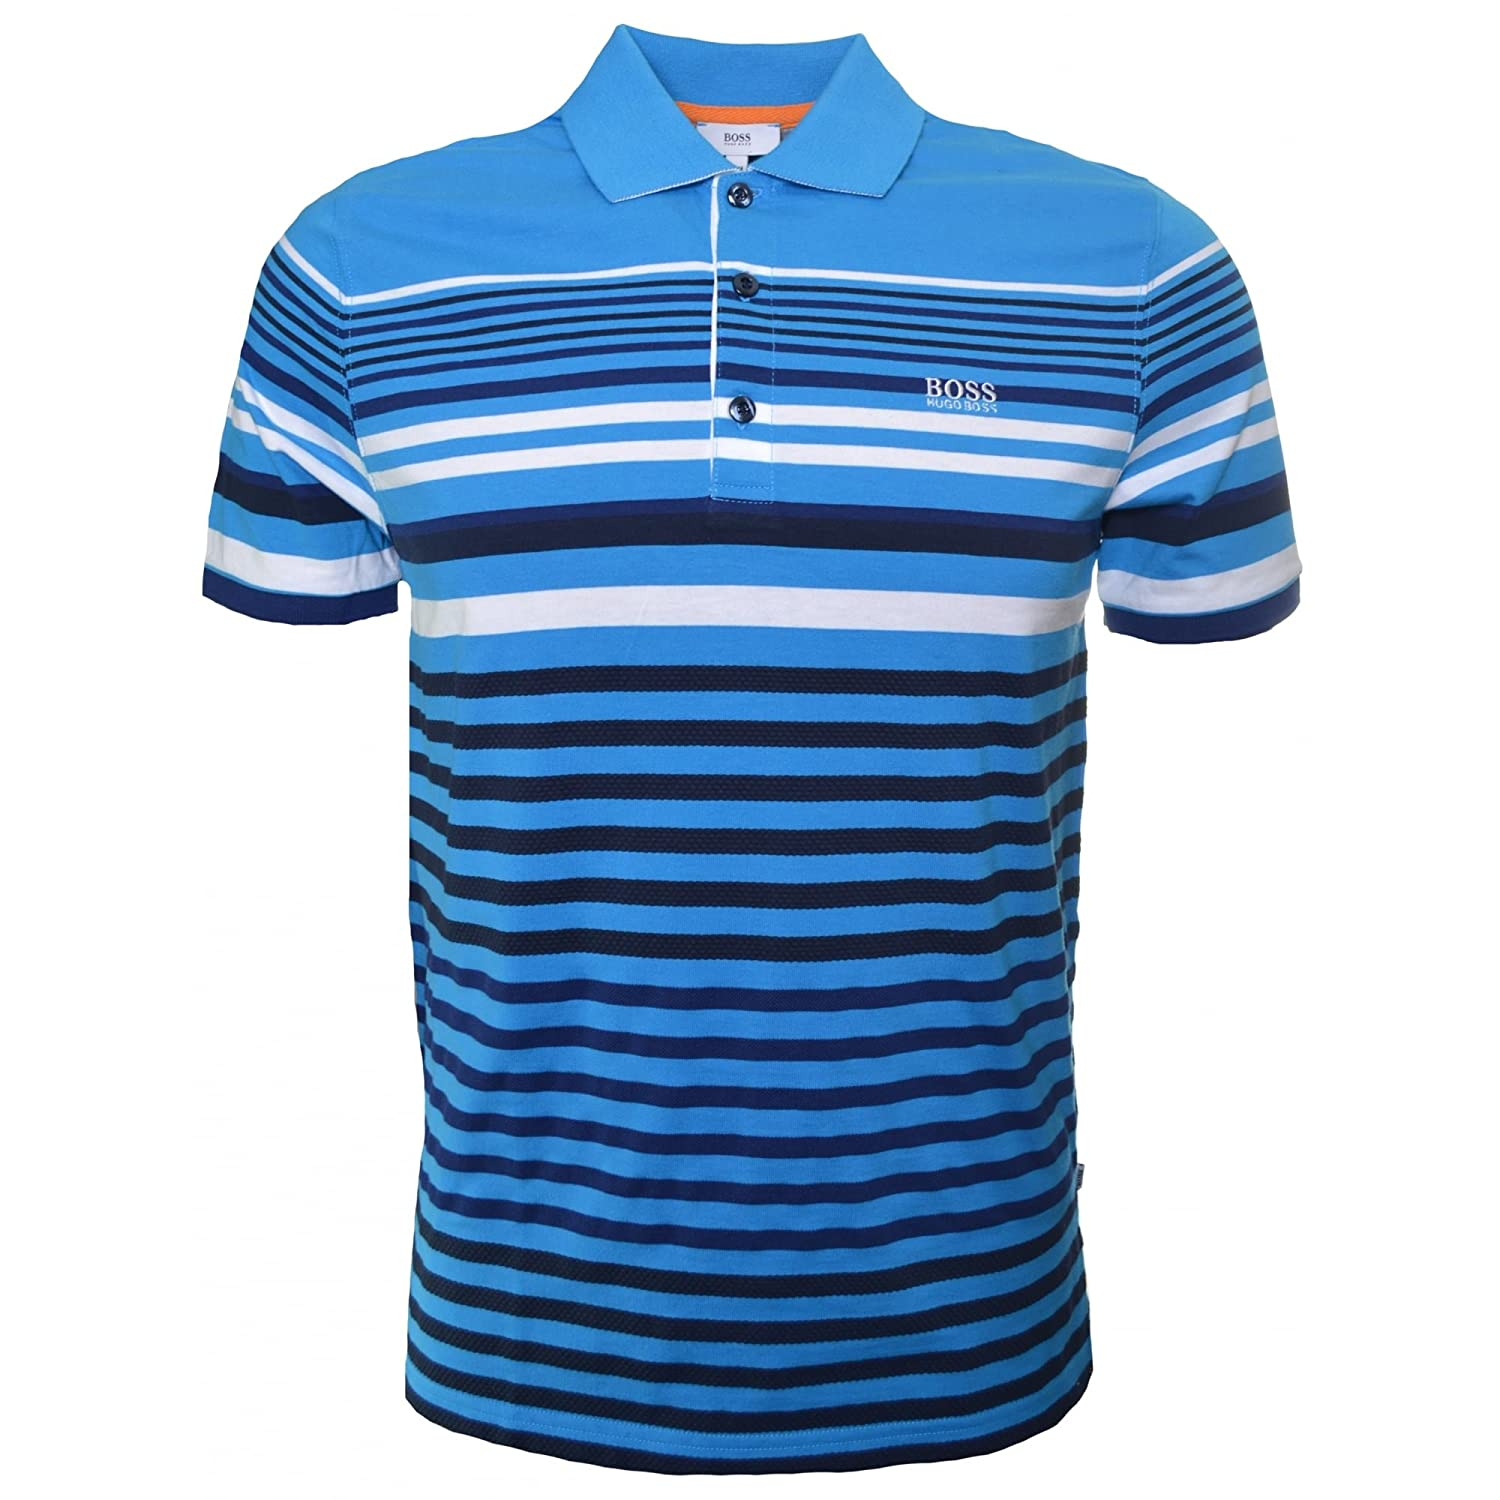 54d008e2 Hugo Boss Kids Blue Striped Polo Shirt 6 Years/114CM: Amazon.ca: Clothing &  Accessories